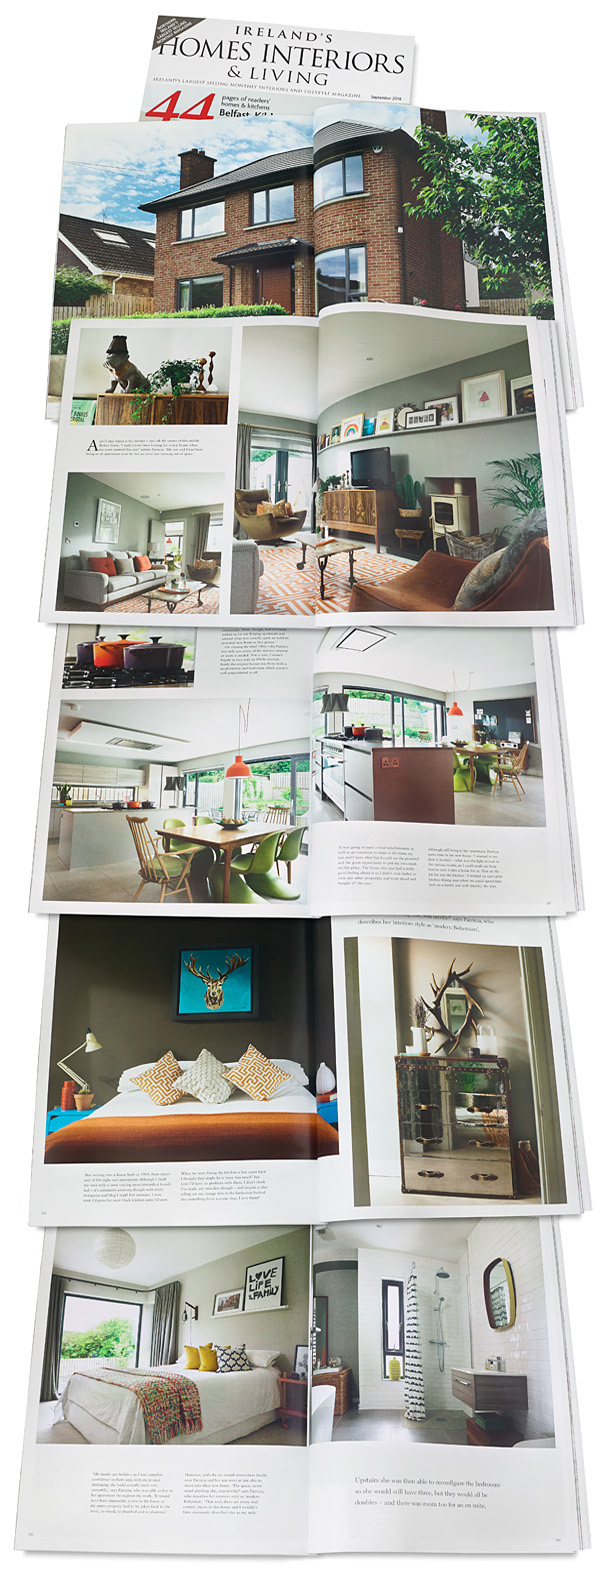 Pages 92 to 105 in the September 2018 issue of Ireland's Homes Interiors and Living magazine featuring Patricia McGinnis' detached 1960s house in Belfast.